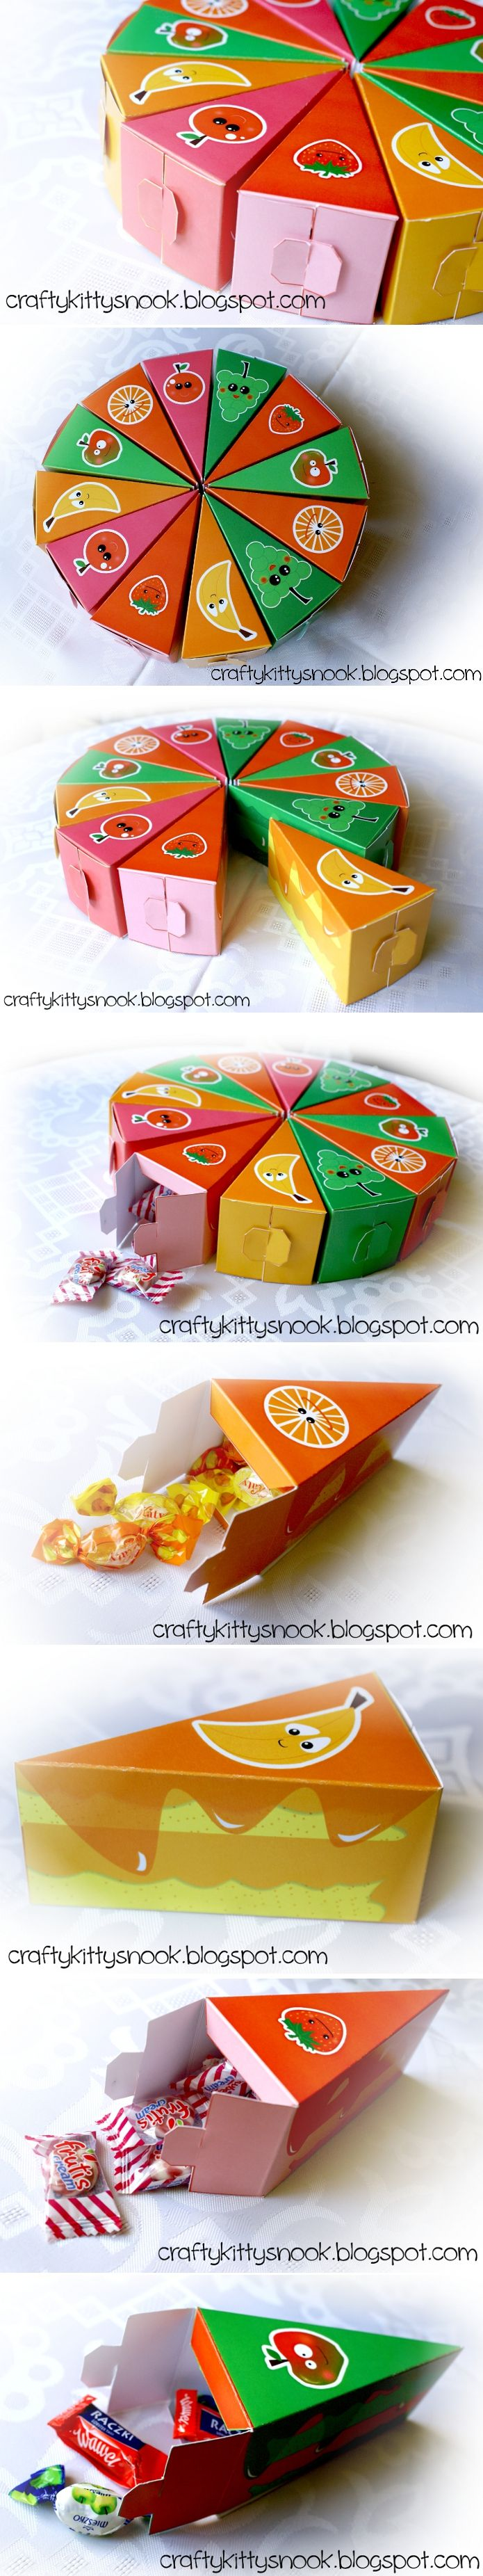 http://craftykittysnook.blogspot.com/2013/09/papierowy-tort-owocowy-paper-fruit.html - Fruit Paper Birthday Cake